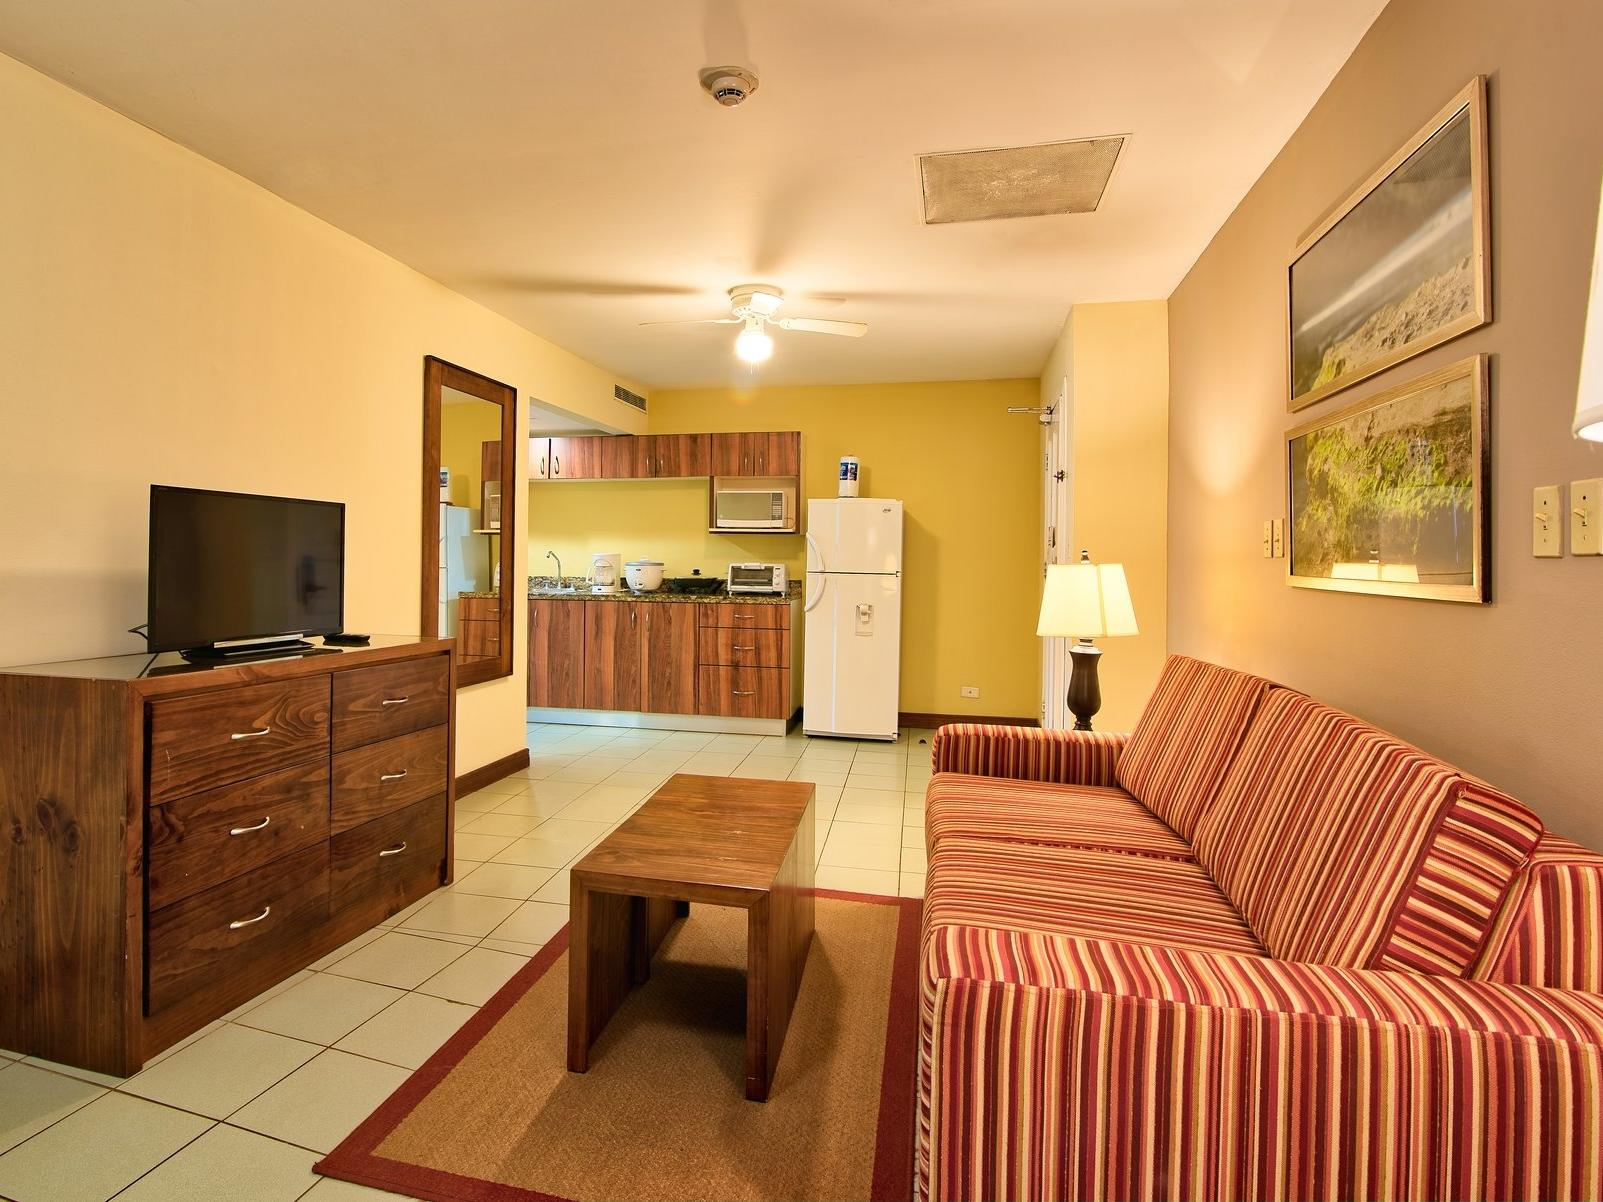 Royal family penthouse with all living facilities at Fiesta Resort